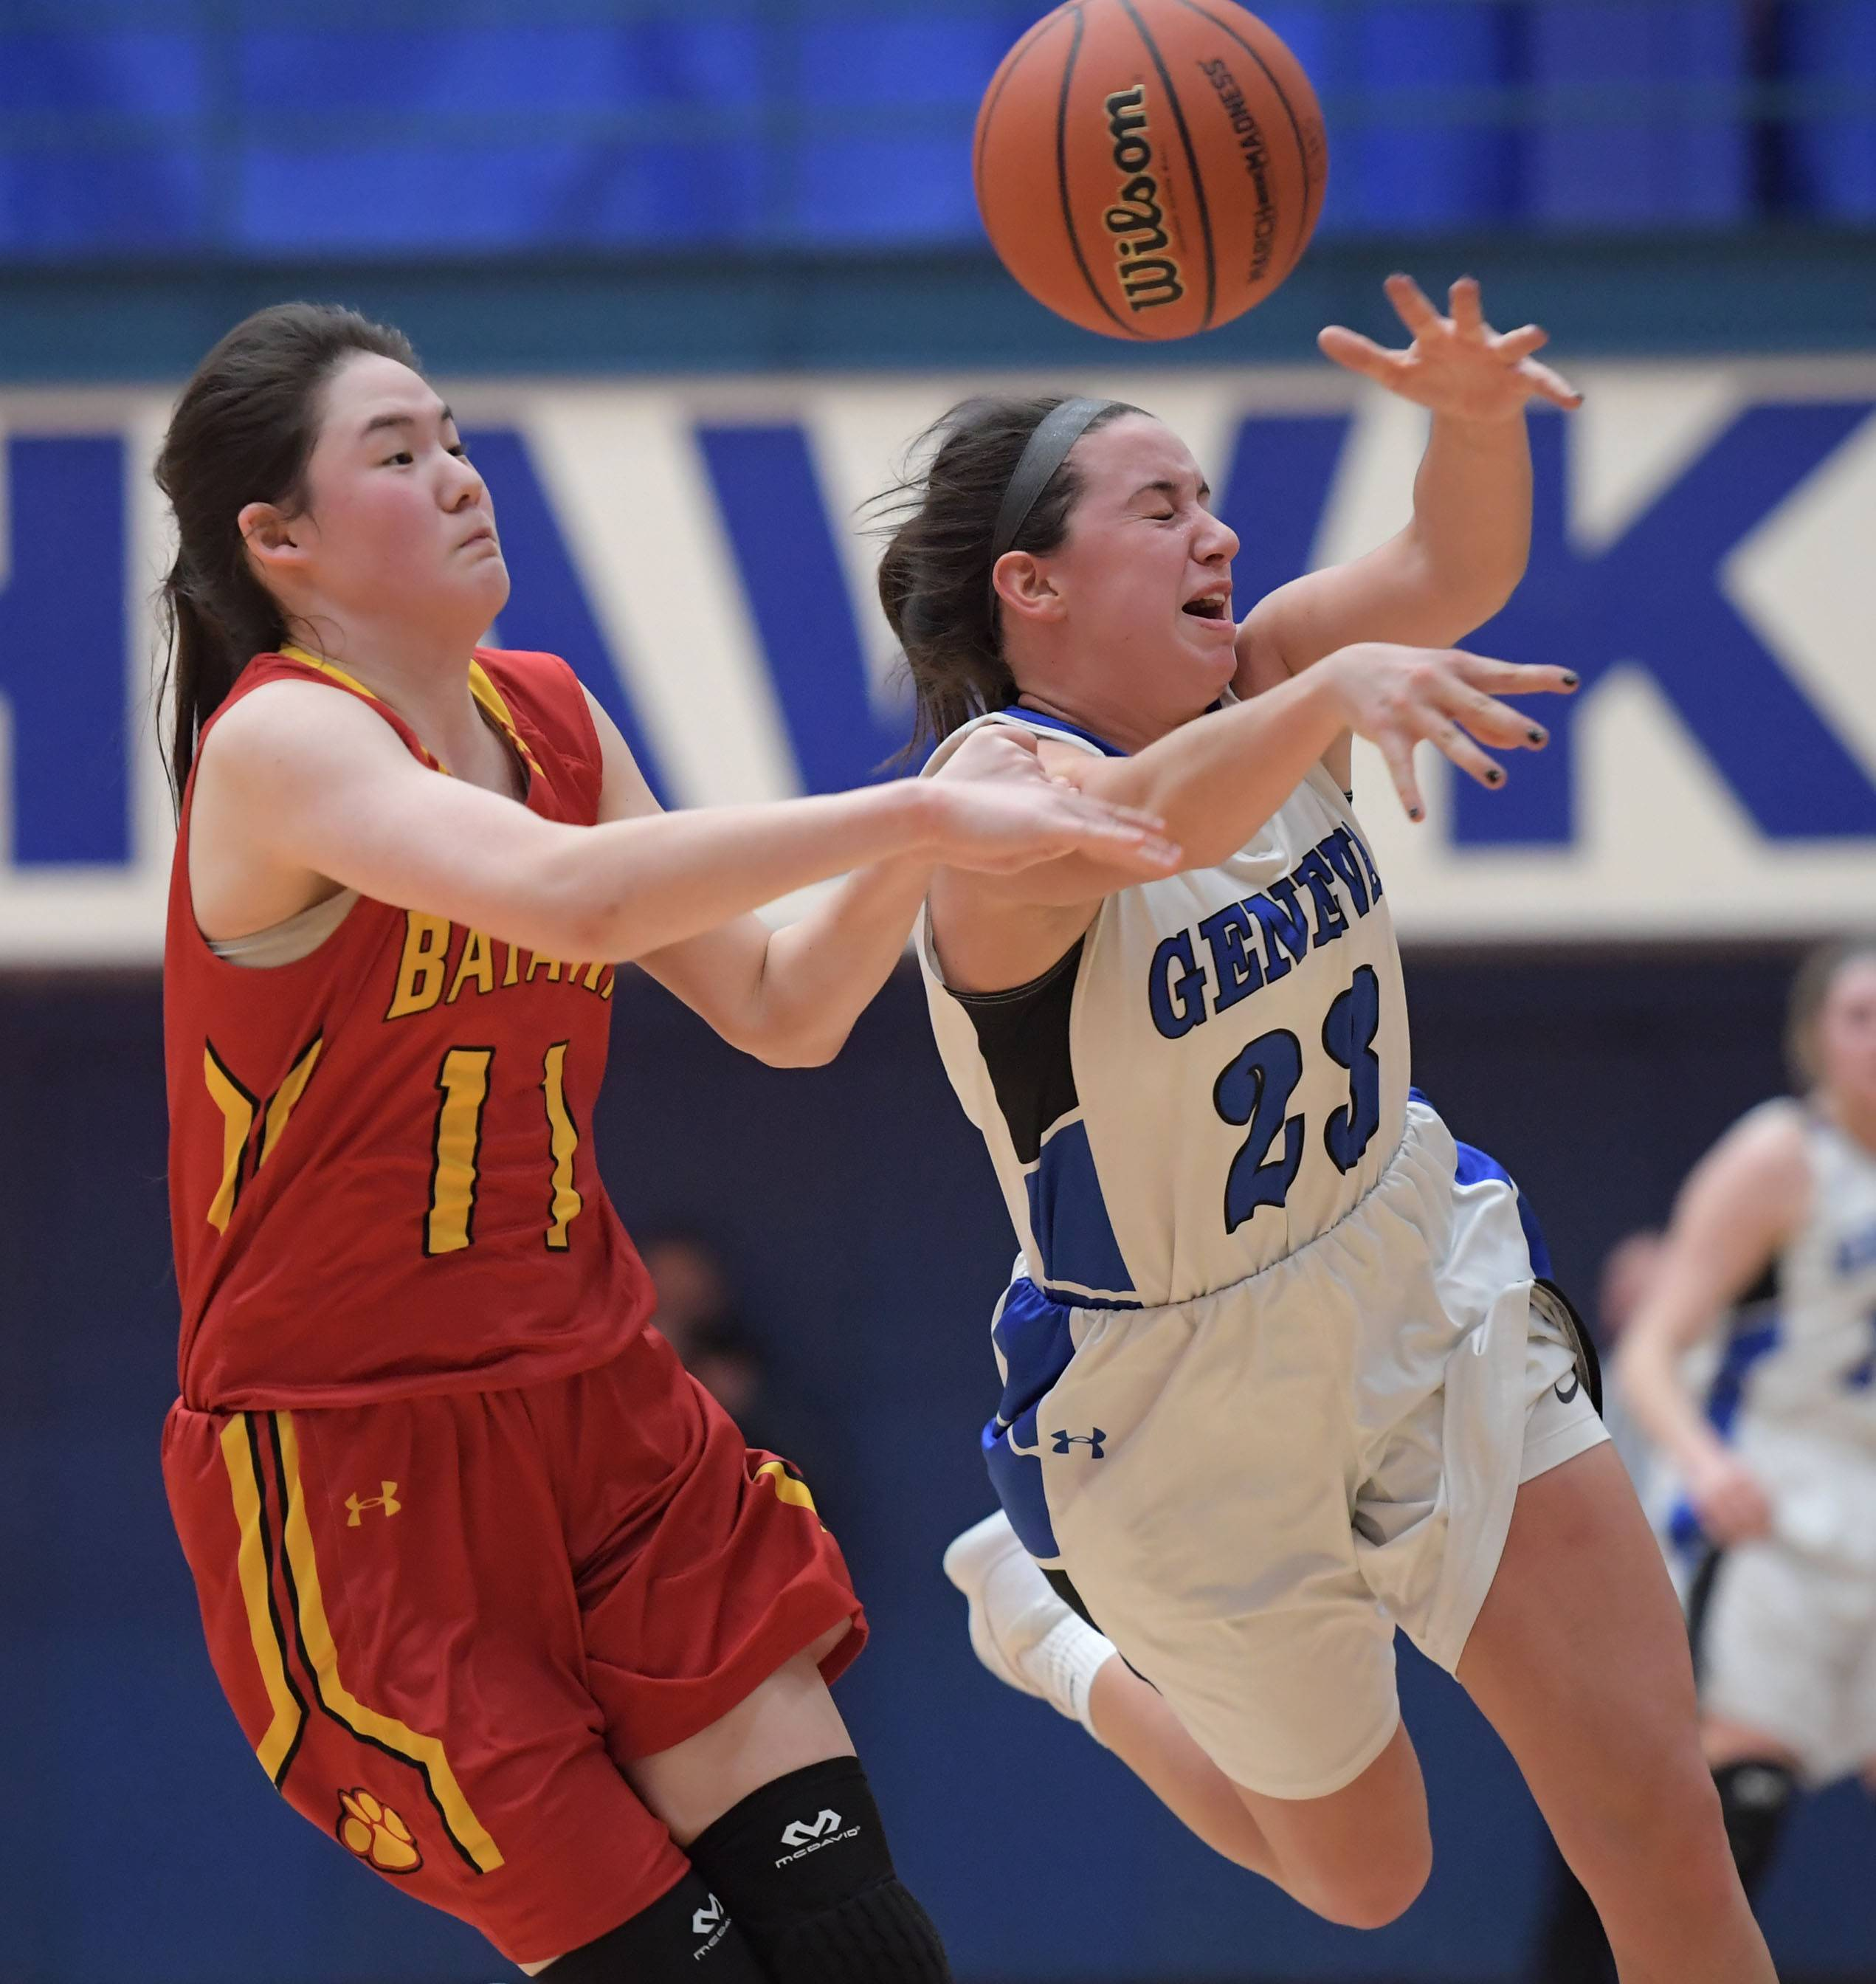 John Starks/jstarks Geneva's Margaret Whitley deflects a pass to Batavia's Jenna Laughlin in the regional championship girls basketball game in Hoffman Estates.